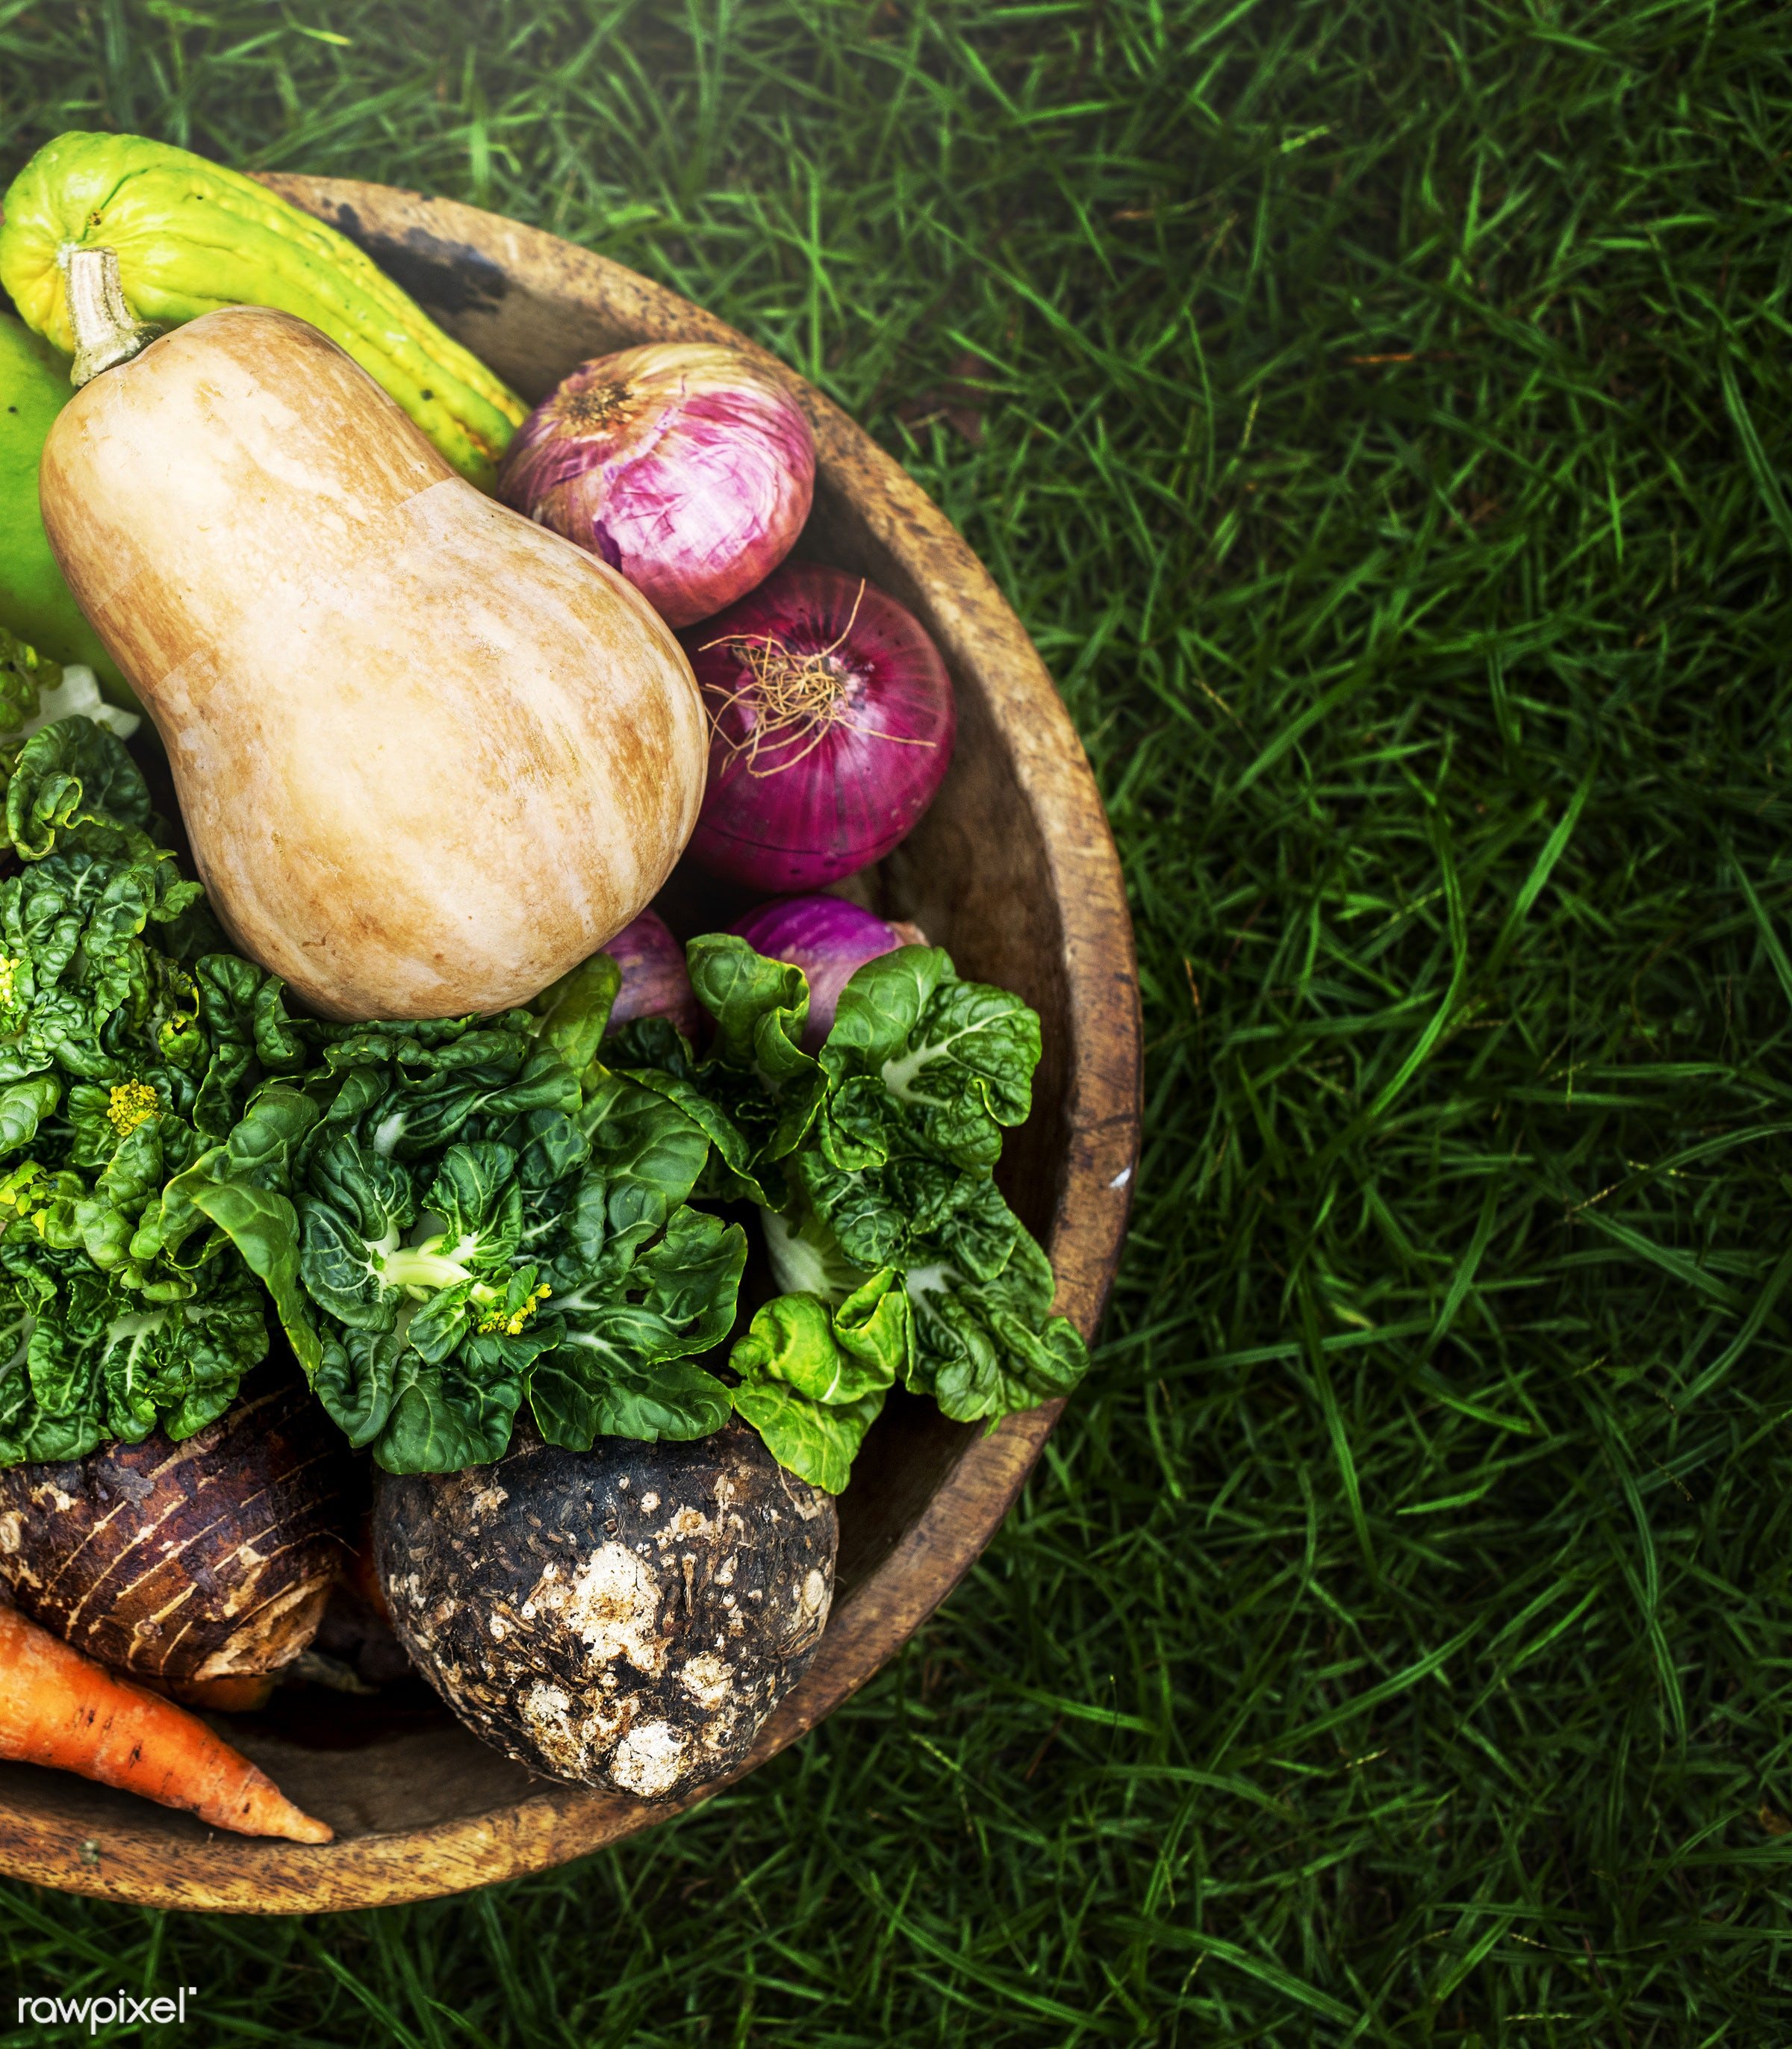 raw, different, root, bucket, fiber, kind, fresh, ingredient, culinary, veggies, variety, edible, nutrition, organic,...